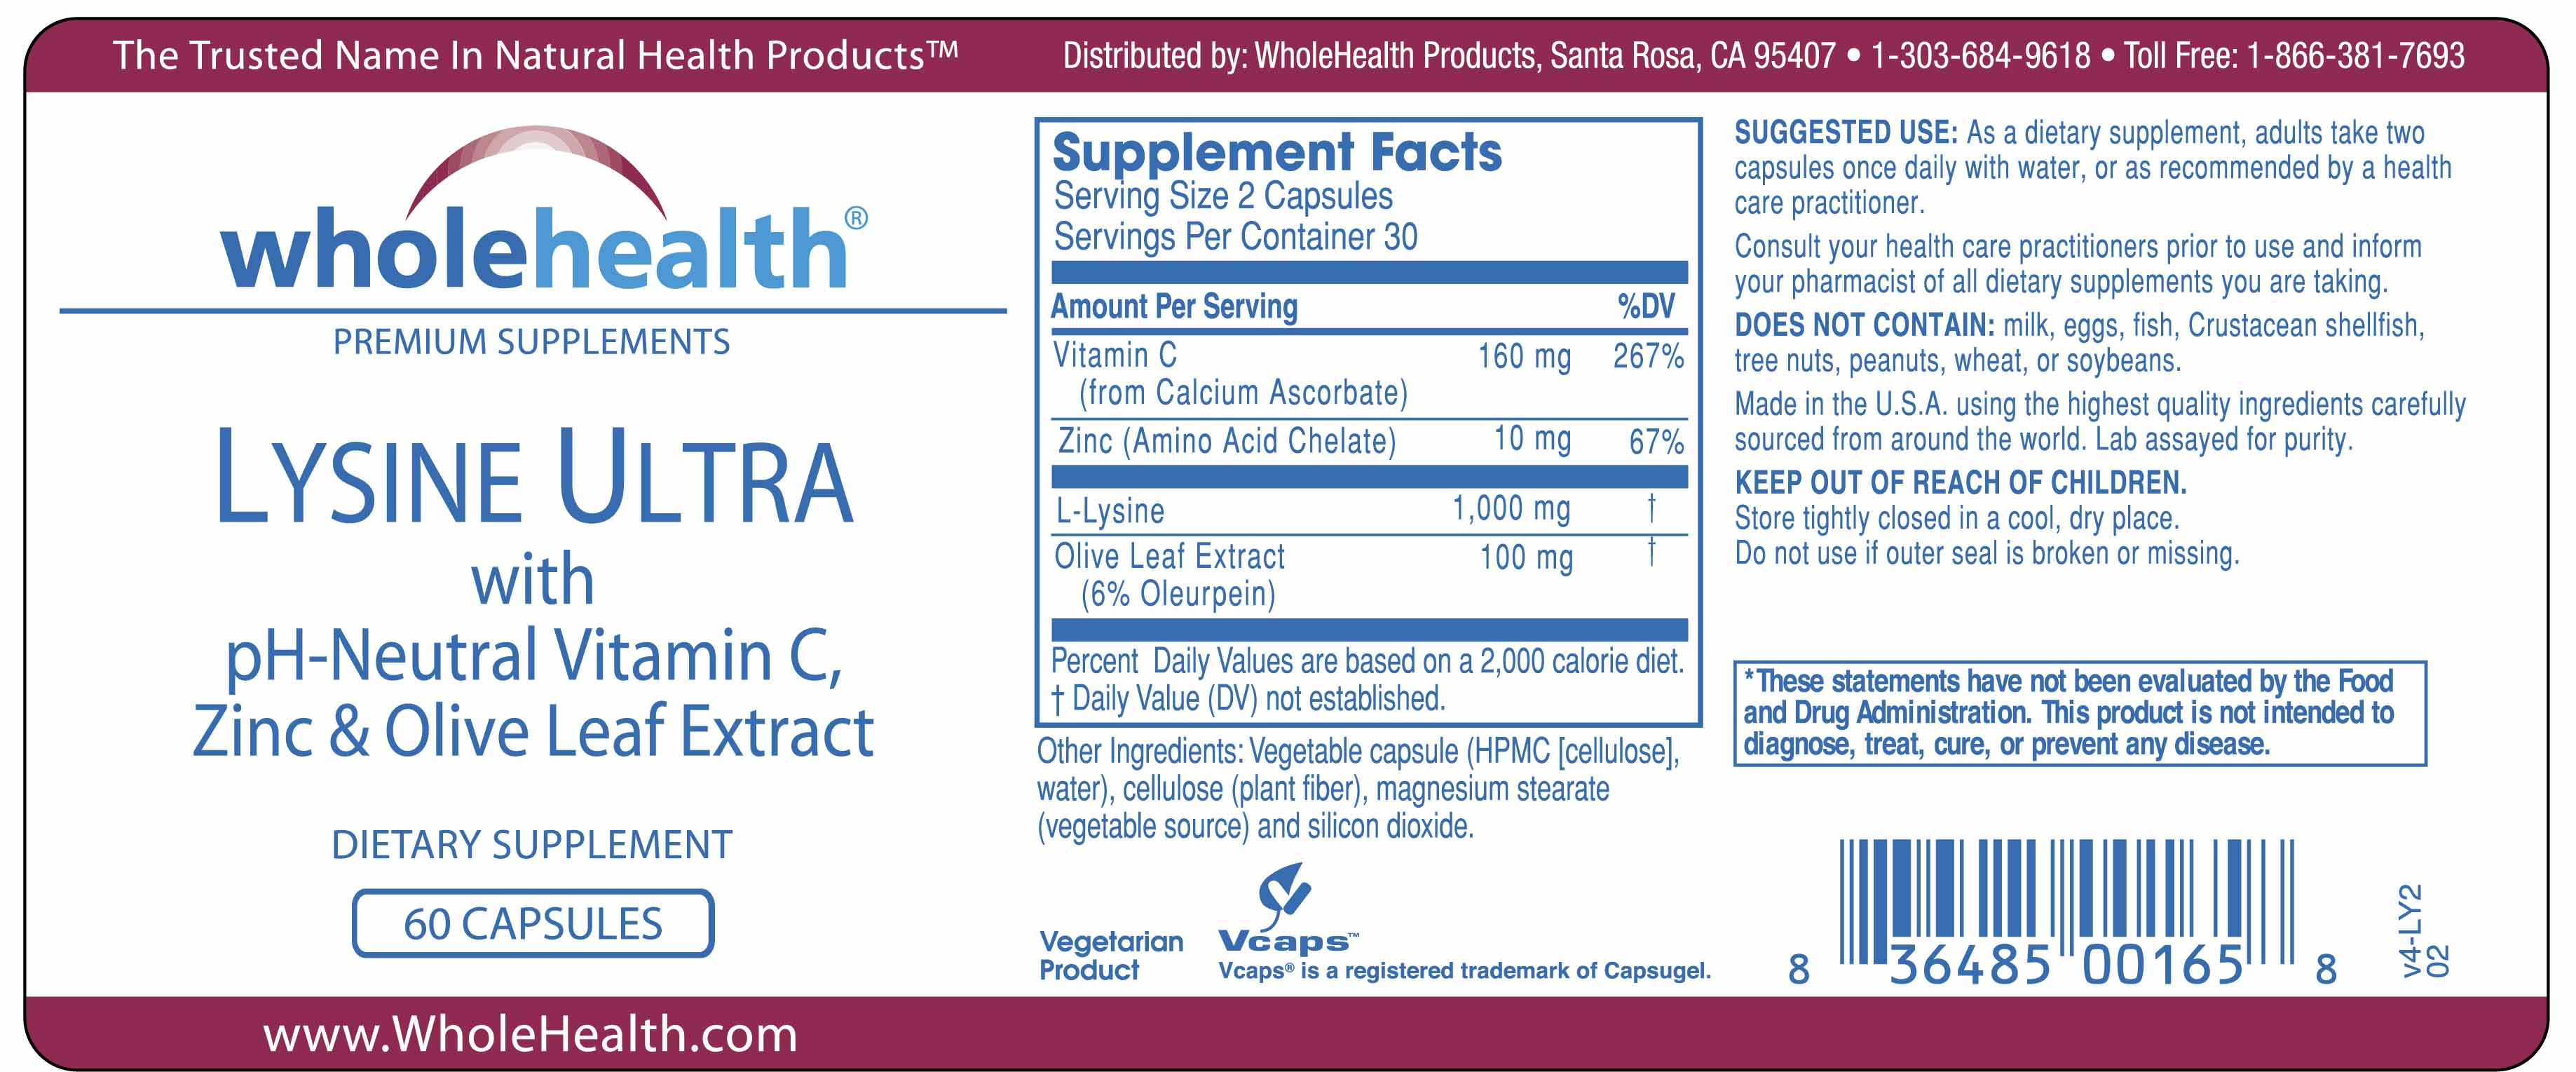 Lysine Ultra (60 Capsules) Supplement Facts Label